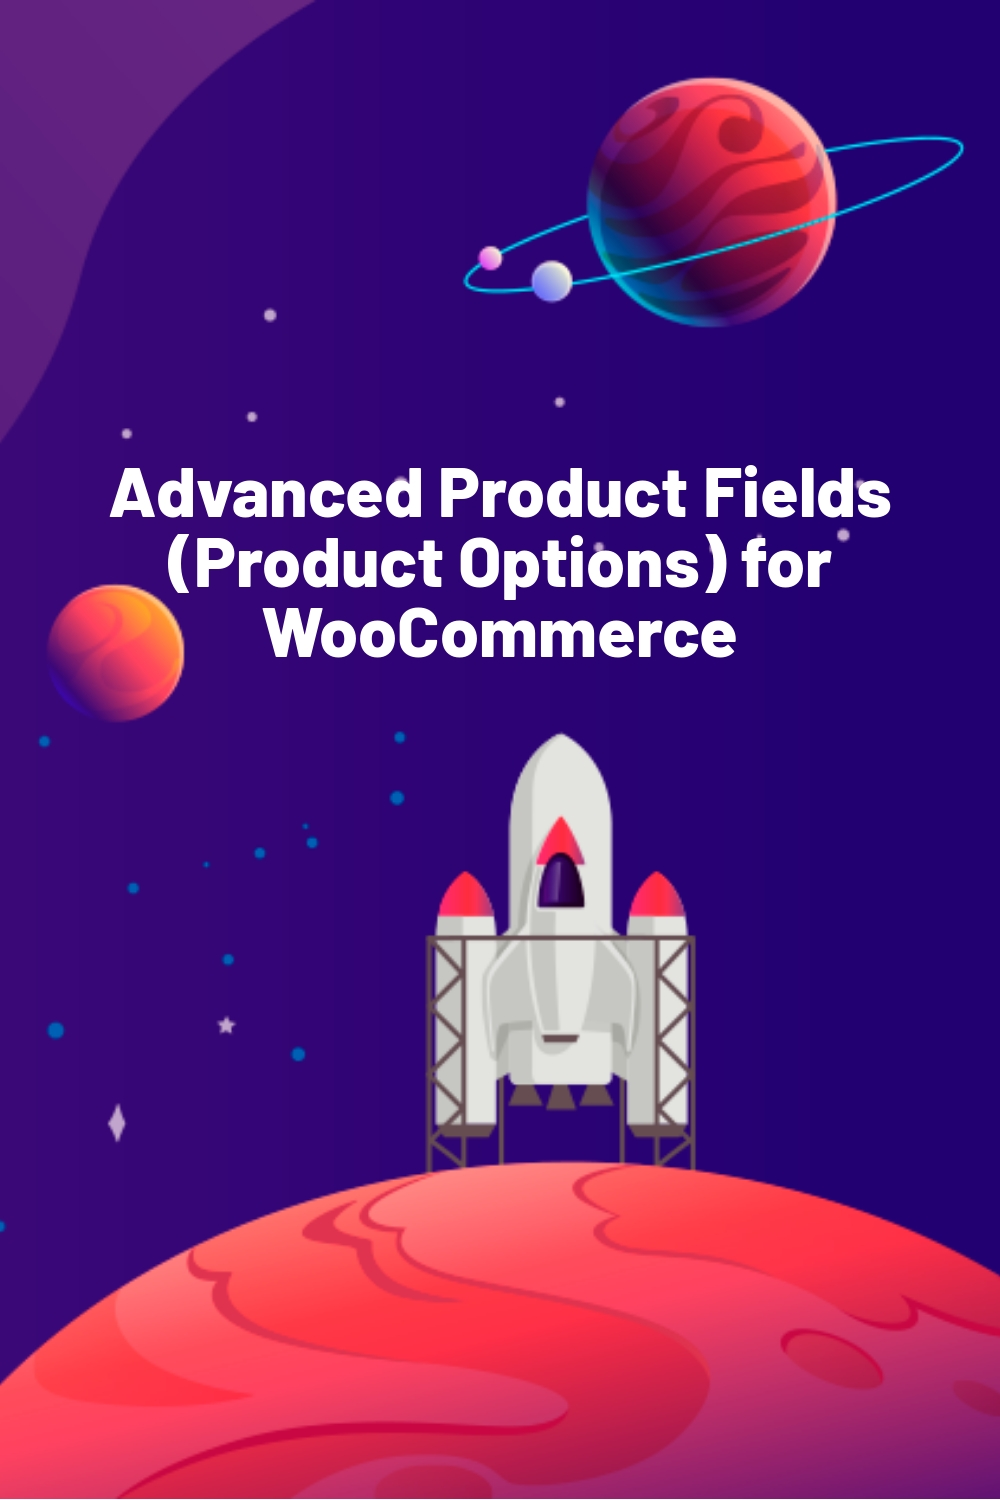 Advanced Product Fields (Product Options) for WooCommerce